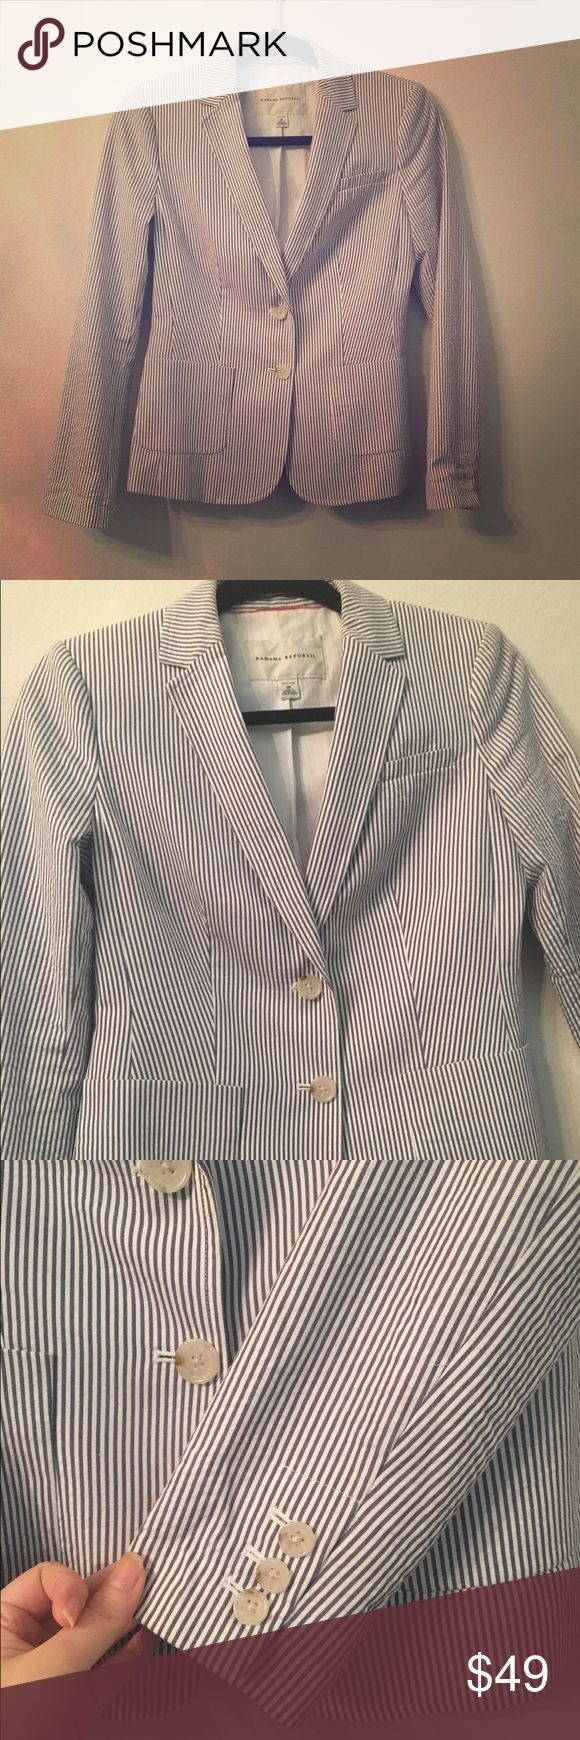 BR seersucker jacket Banana republic pinstripe seersucker jackets. The pinstripe is shades of blueish grey. Two buttons and two front pockets. Size 0P Banana Republic Jackets & Coats Blazers